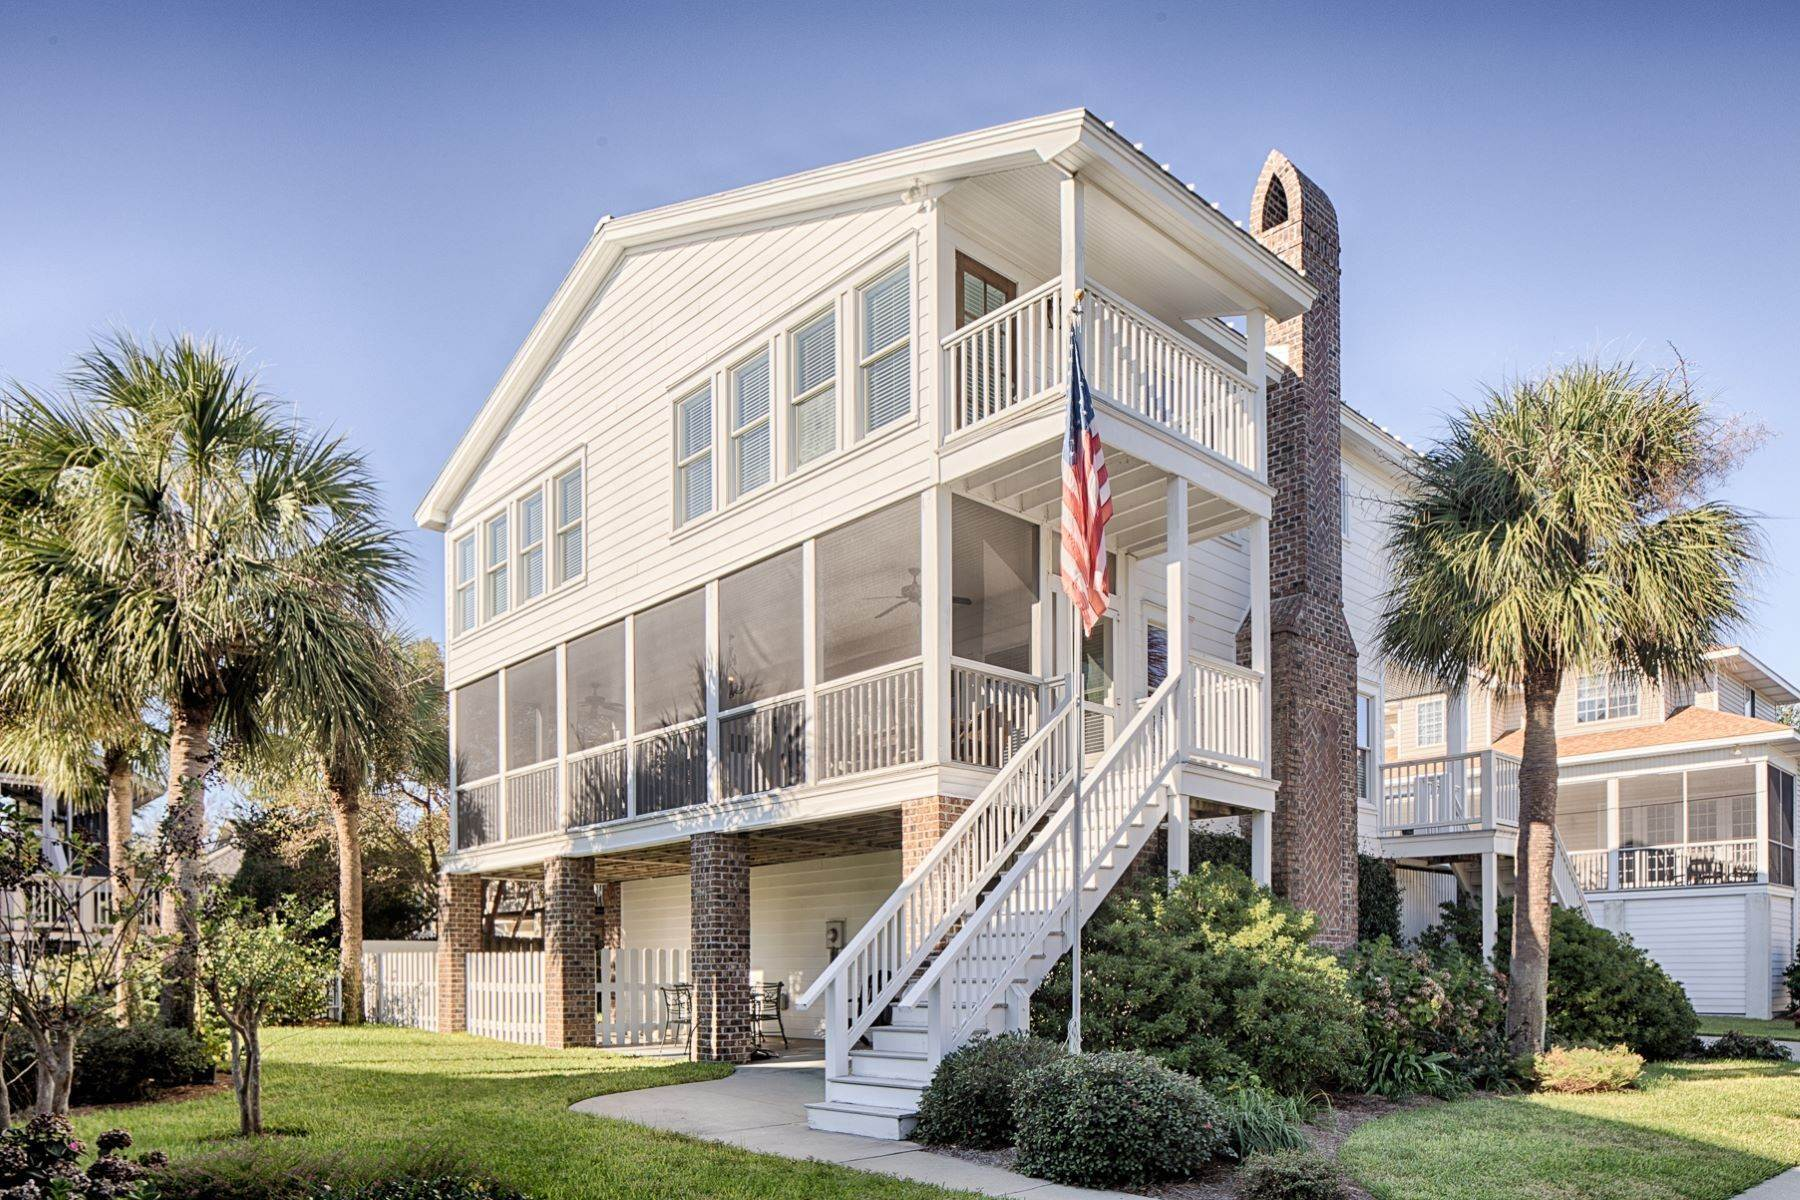 Single Family Homes for Sale at 5 11th Terrace Tybee Island, Georgia 31328 United States